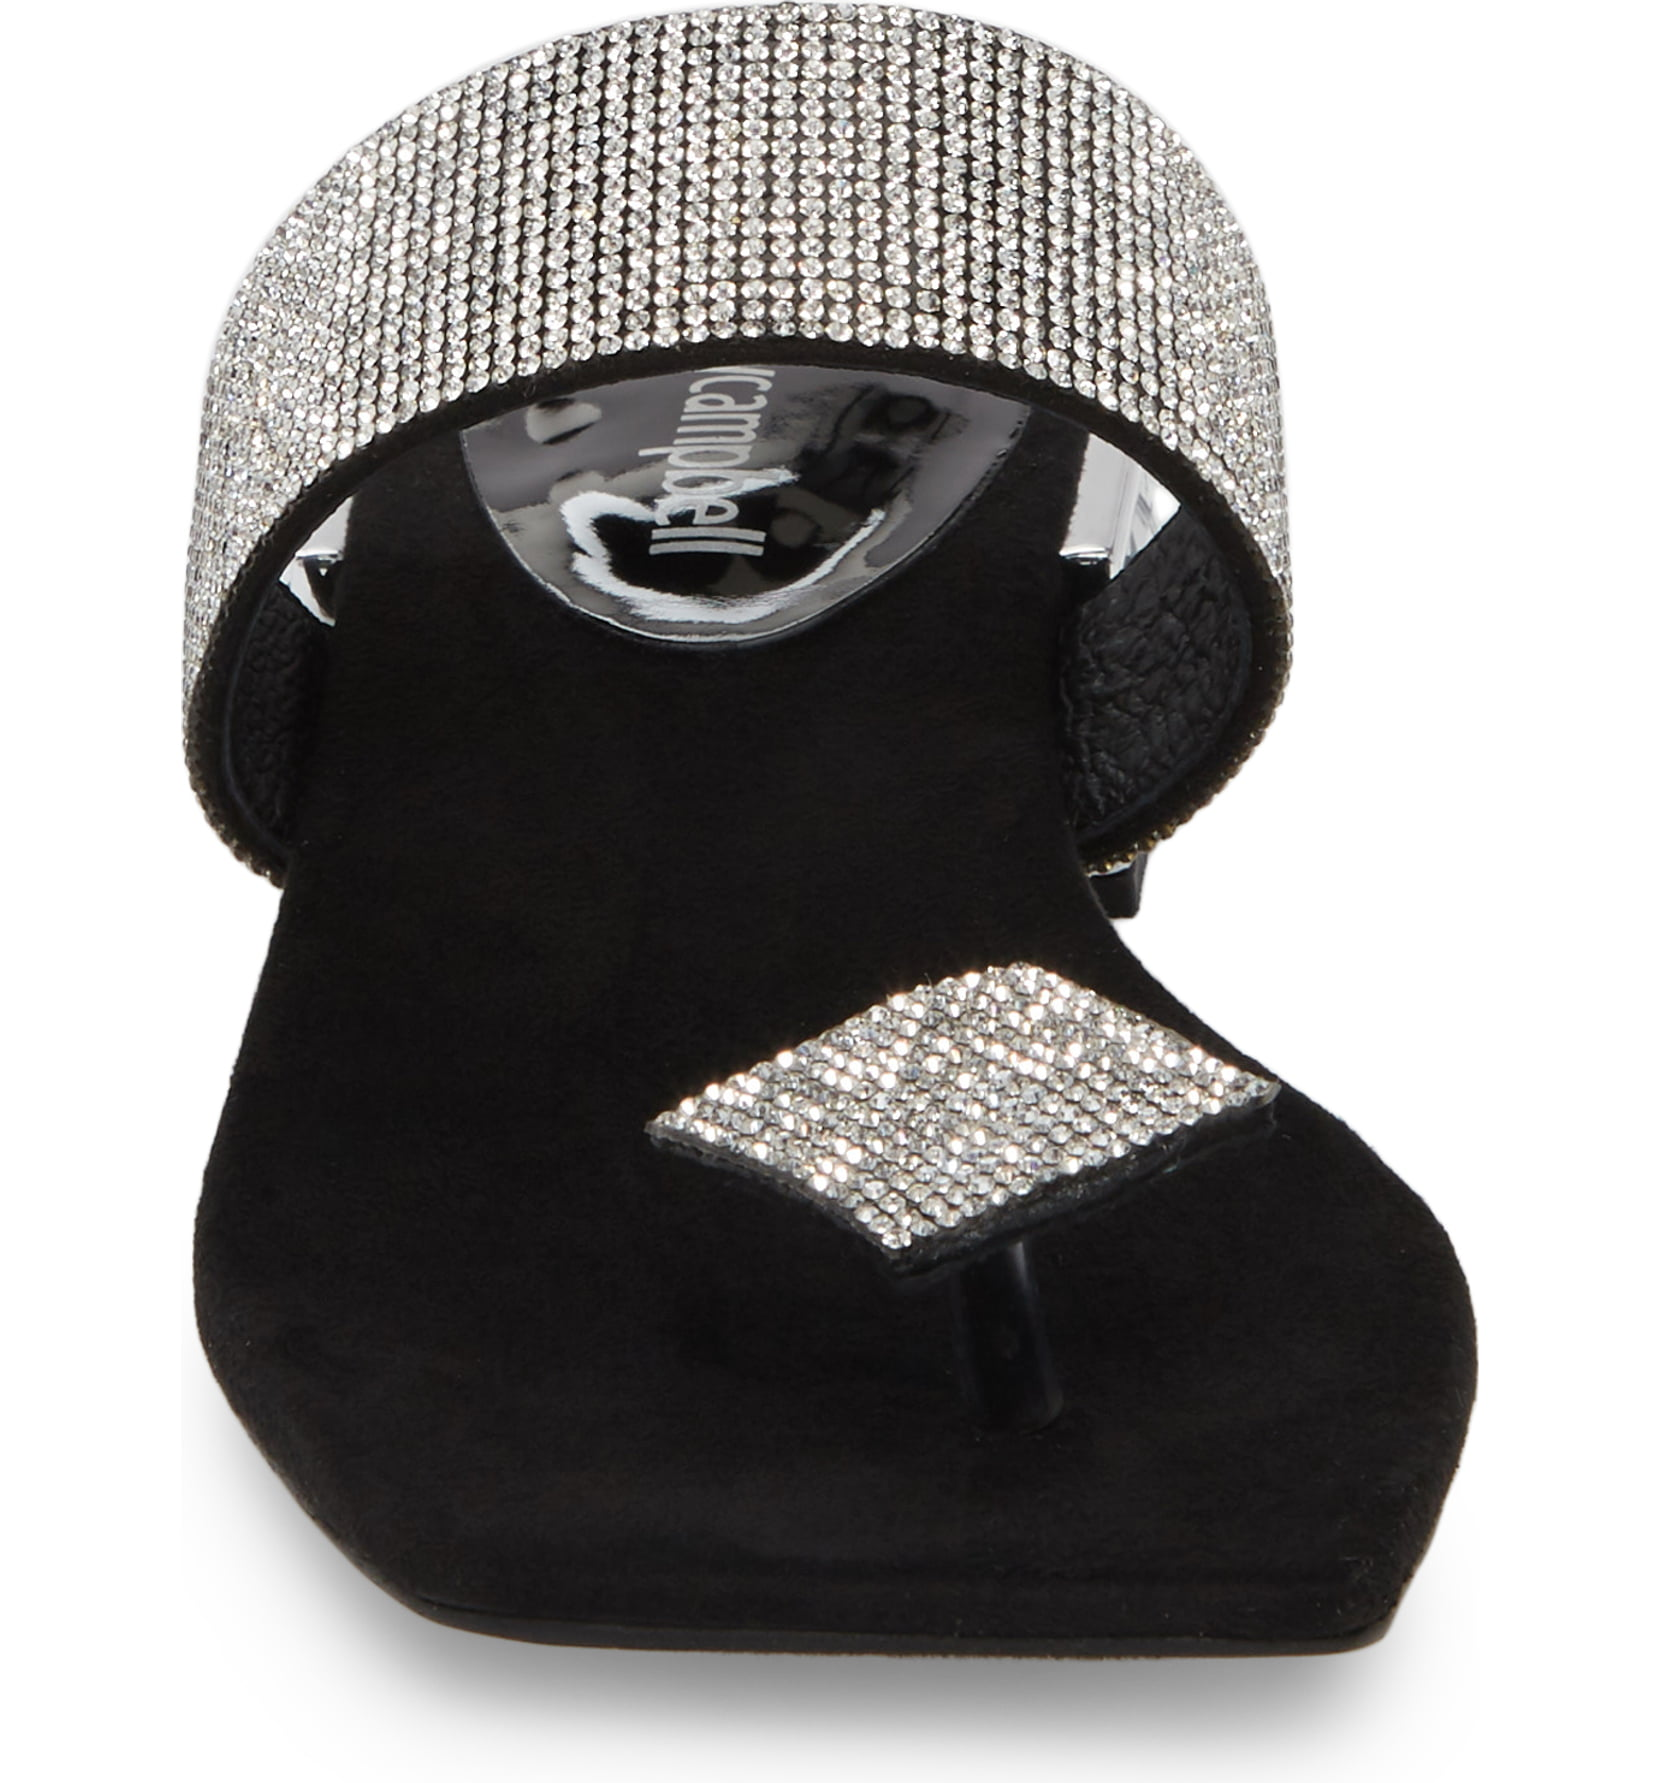 Jeffery-Campbell-ALISE-SH-Black-Silver-Embellished-Sandal-Jeweled-Square-Heel thumbnail 35